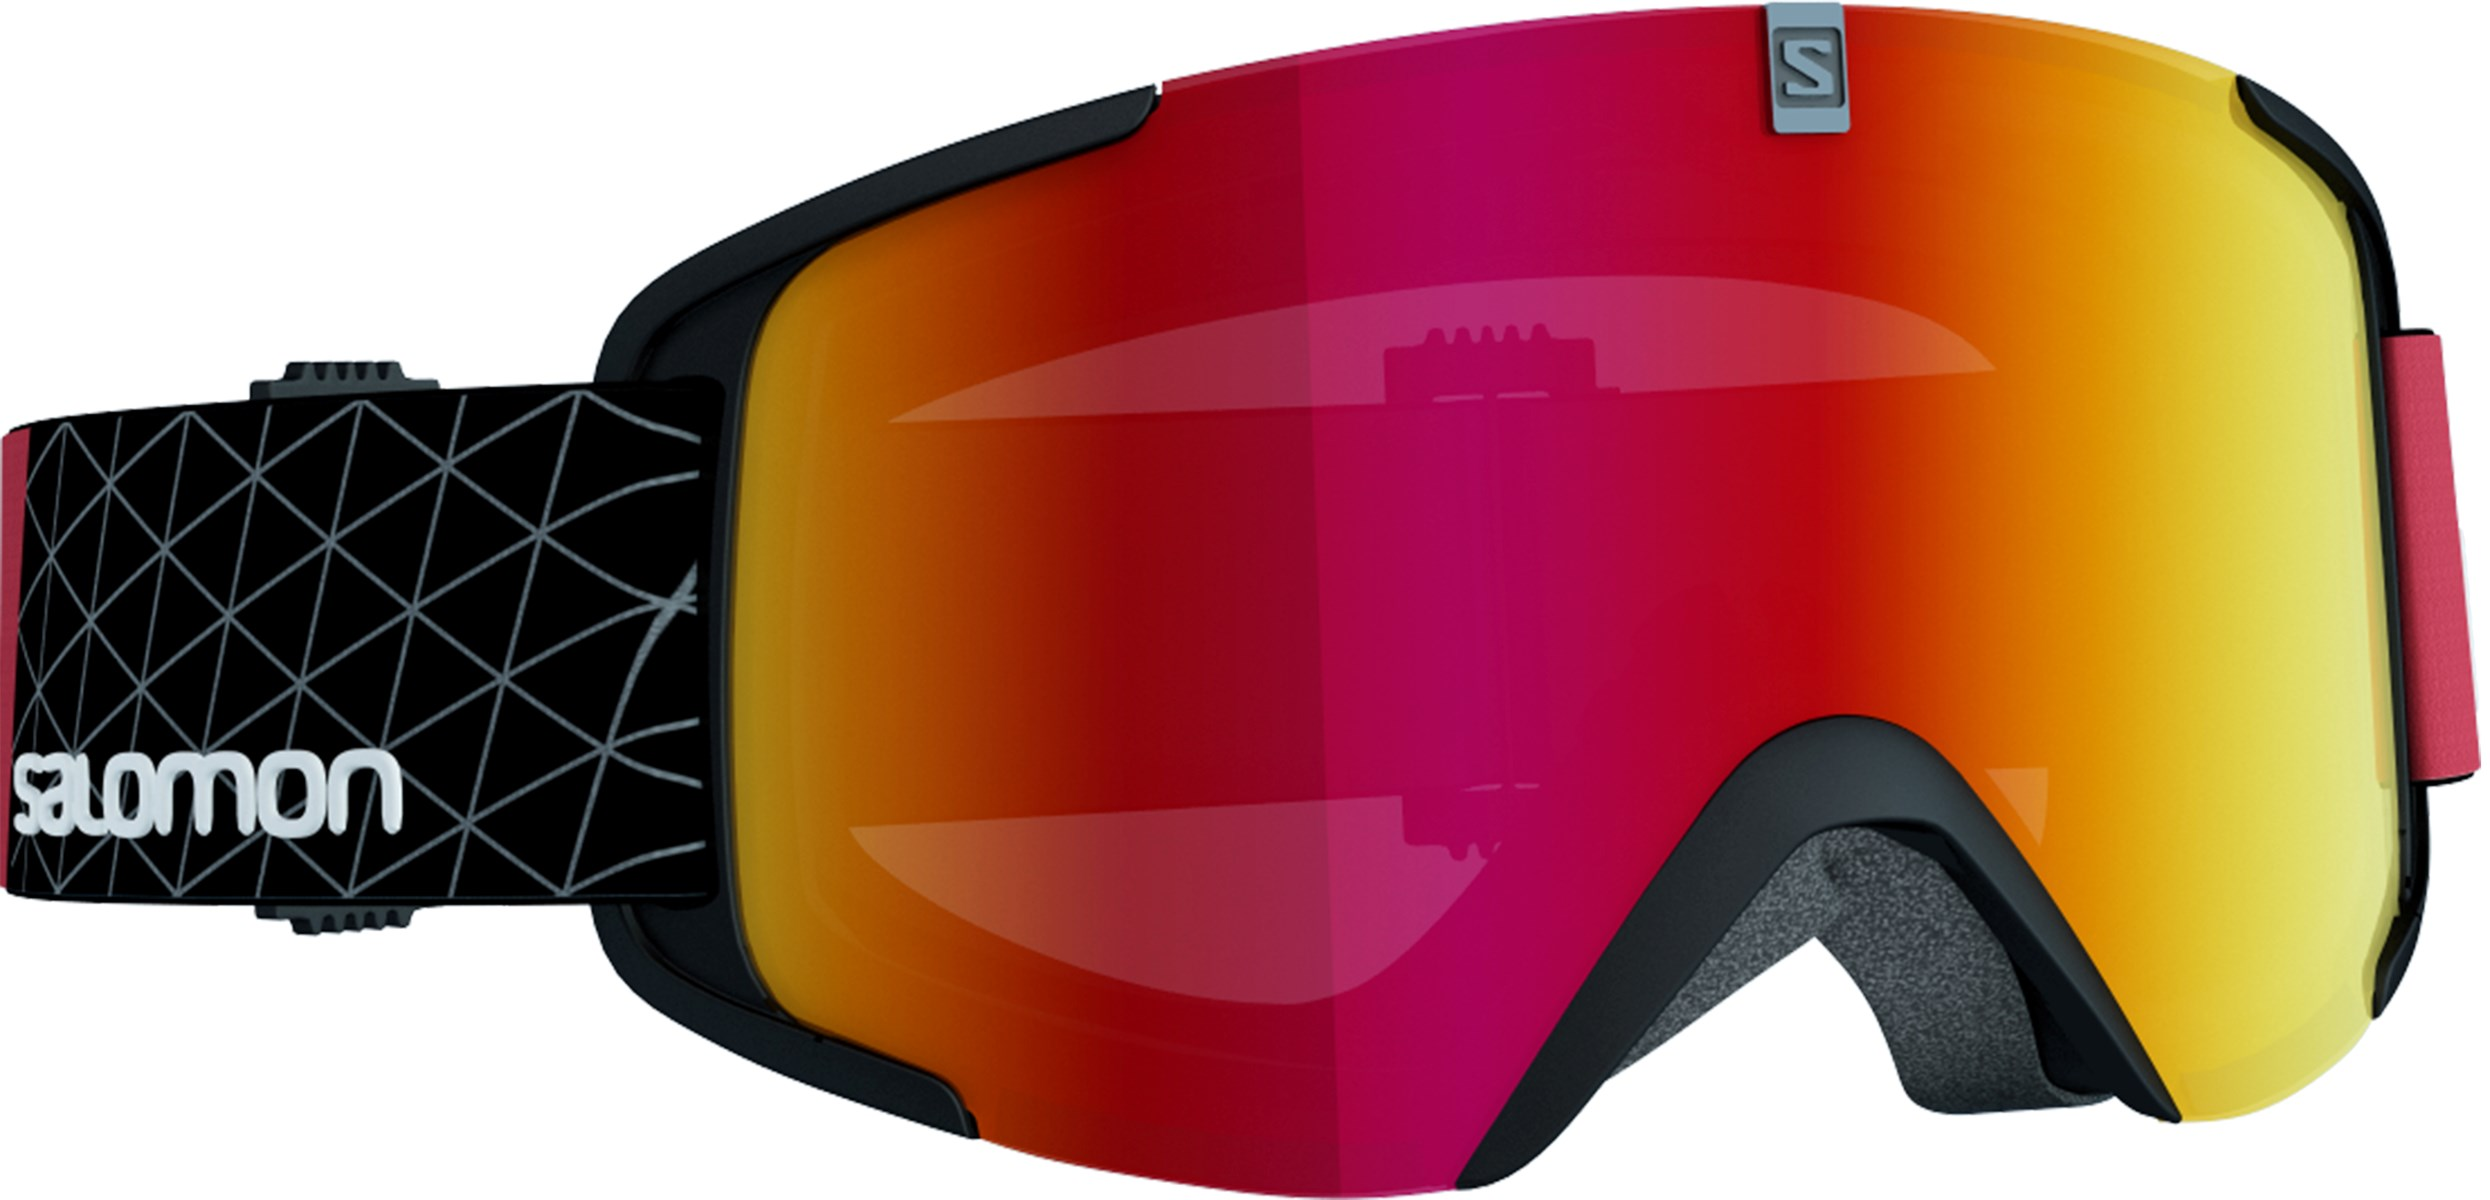 5b9e58c2940 Salomon X View Ski Goggle In Black Red With Mirror Red Lens £70.00